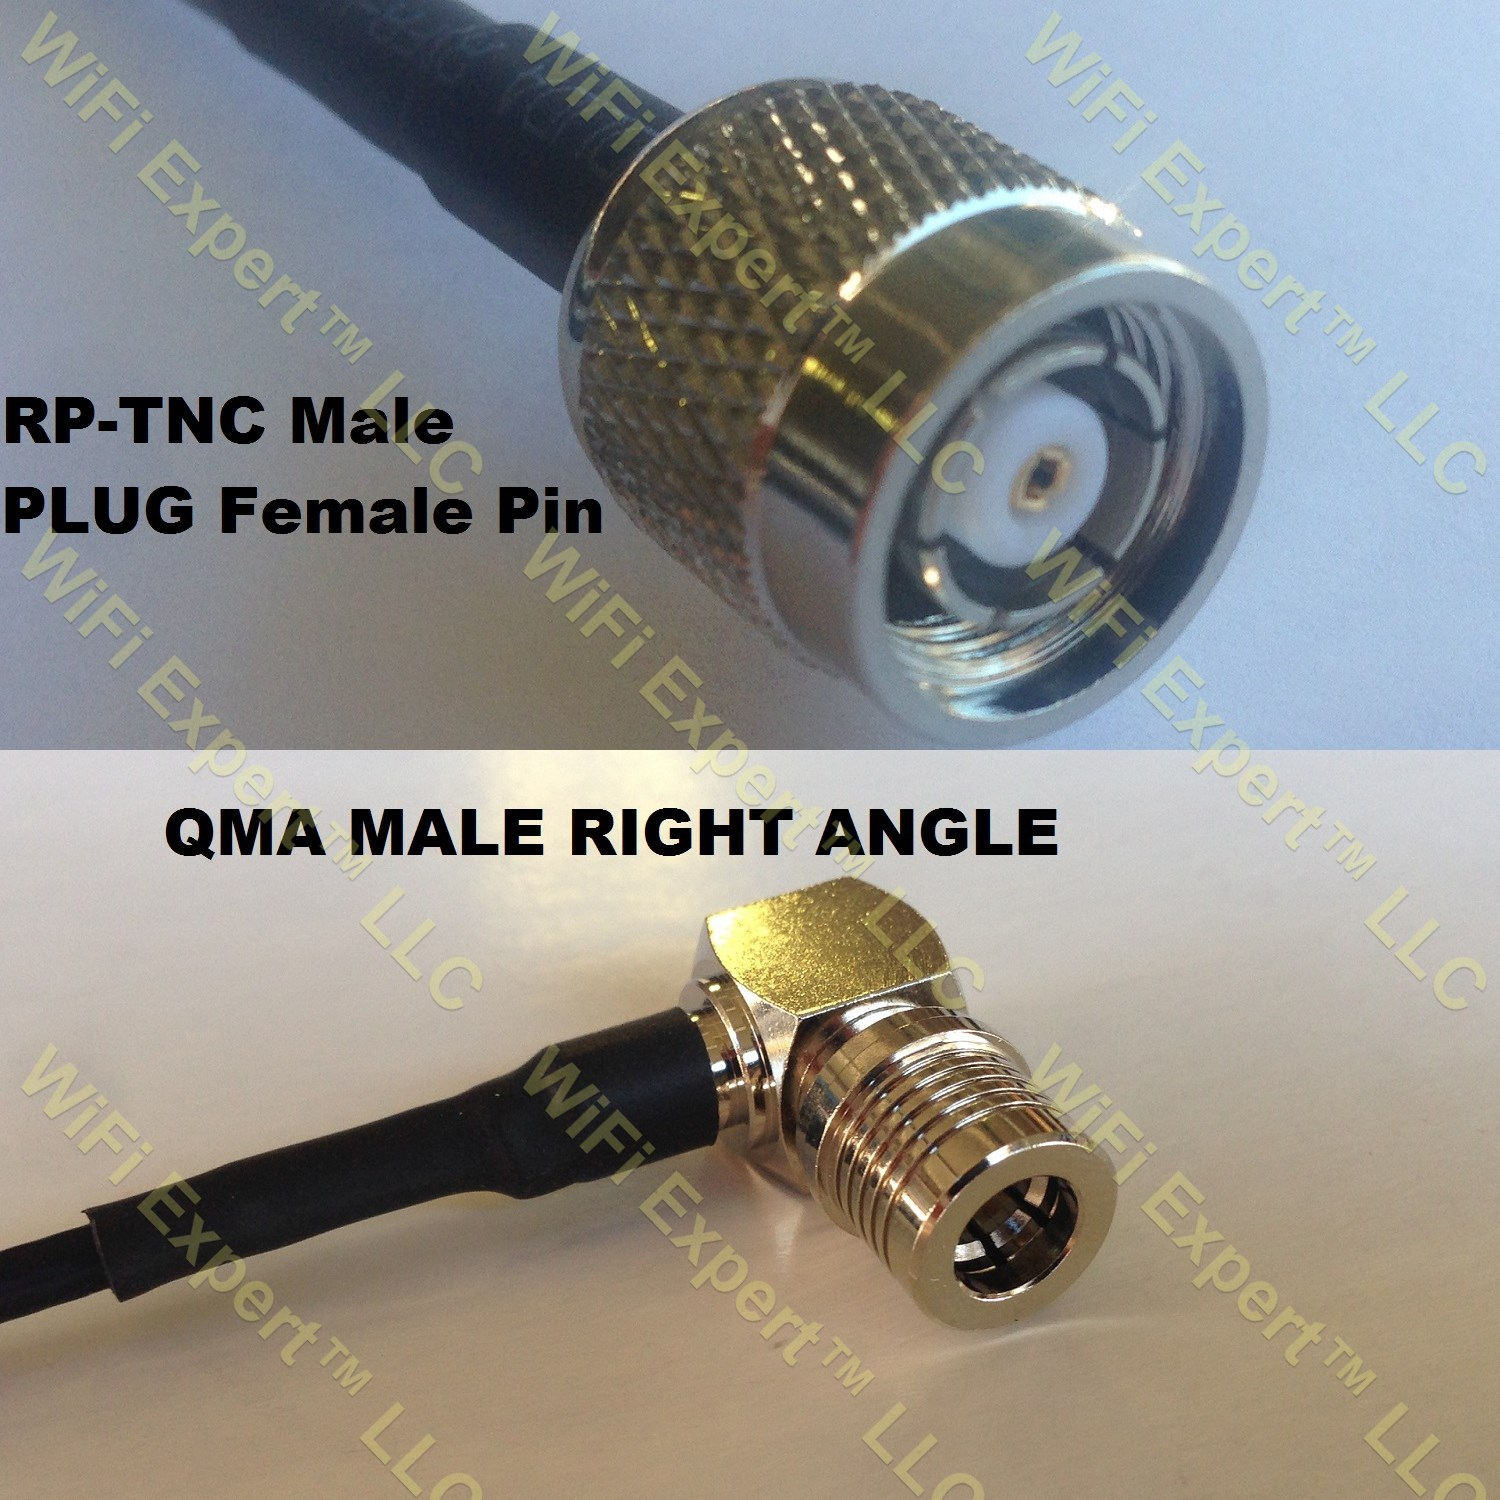 WB9JPH additionally Lmr100 Tnc Male To Mmcx Female Angle Coaxial Rf Pigtail Cable moreover Rg400 Rp Tnc Male To Bnc Male Angle Coaxial Rf Pigtail Cable also C400RPTNCF together with RPSMA to RPTNC Female Adapter. on tnc ham radio kits